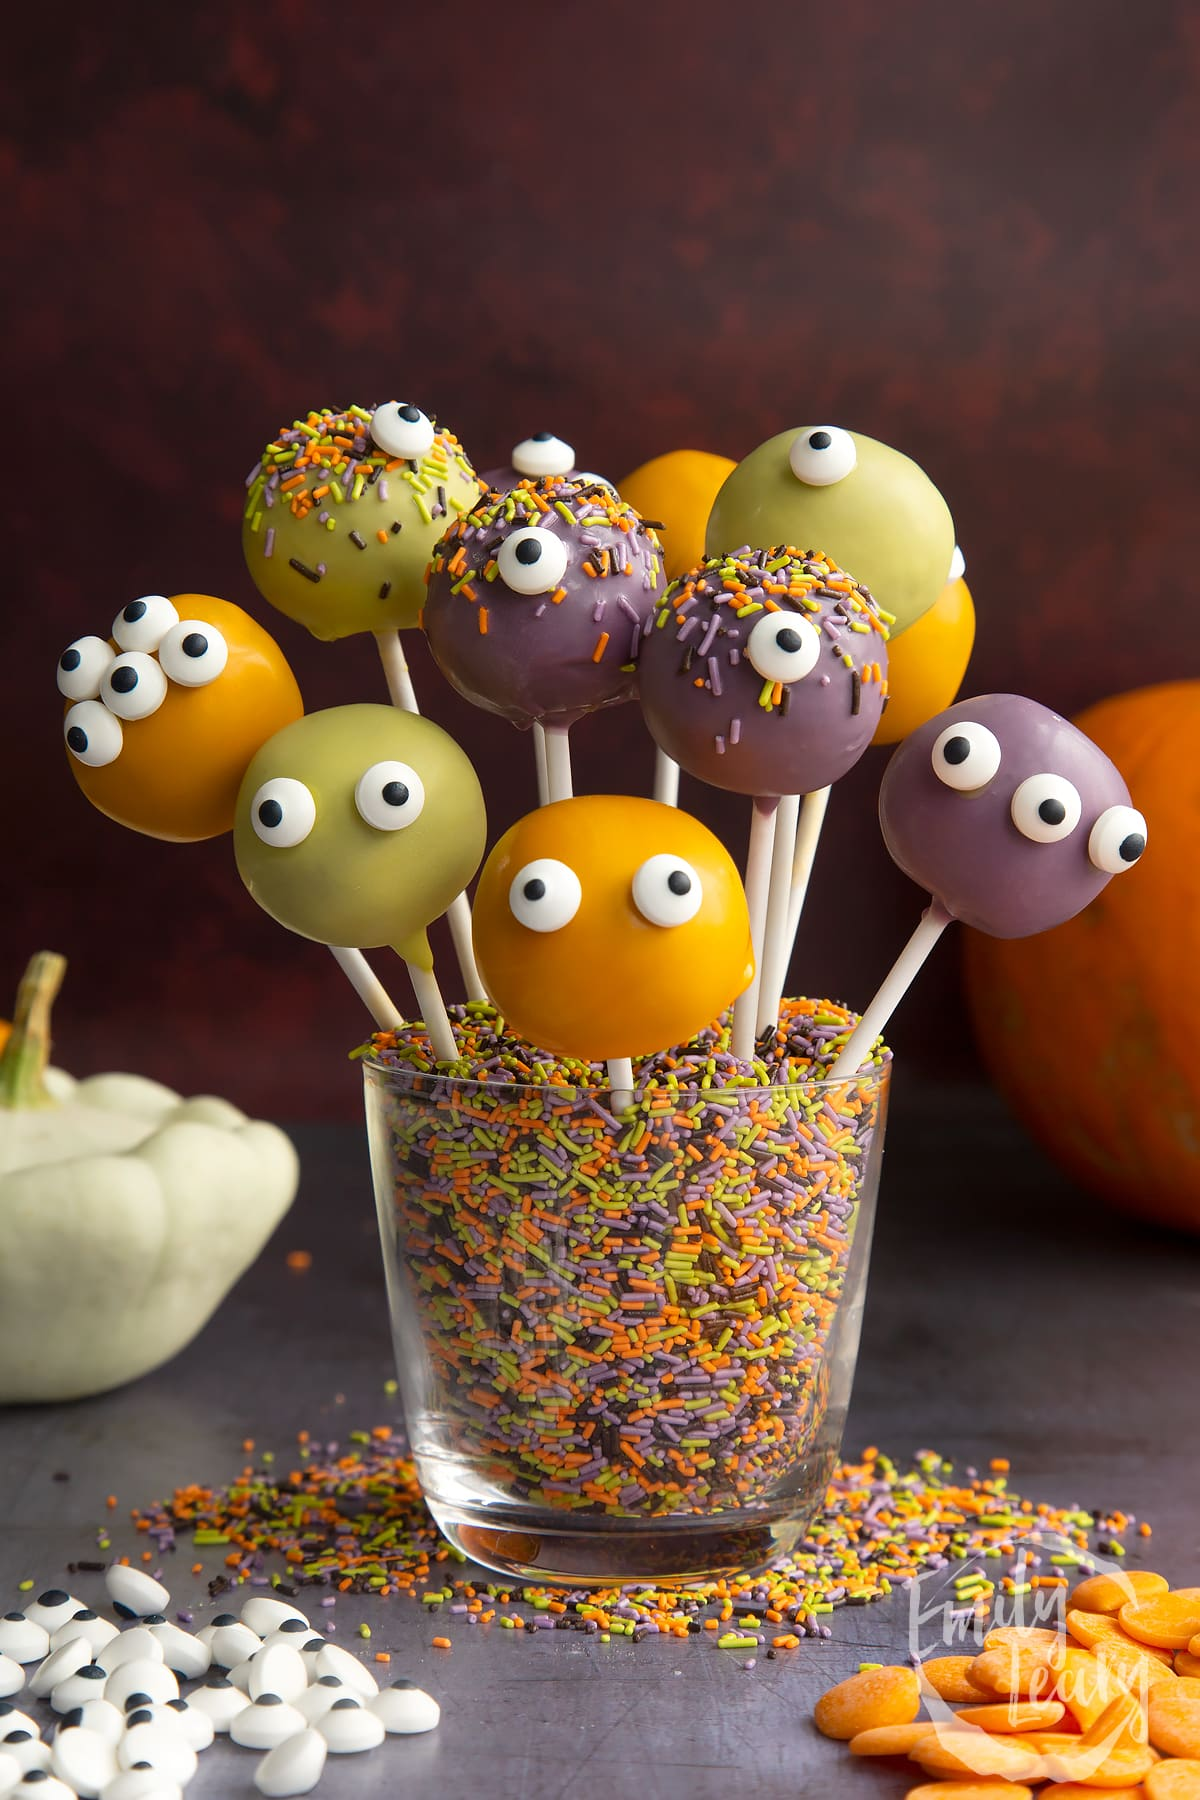 Halloween cake pops standing in a glass filled with Halloween sprinkles.